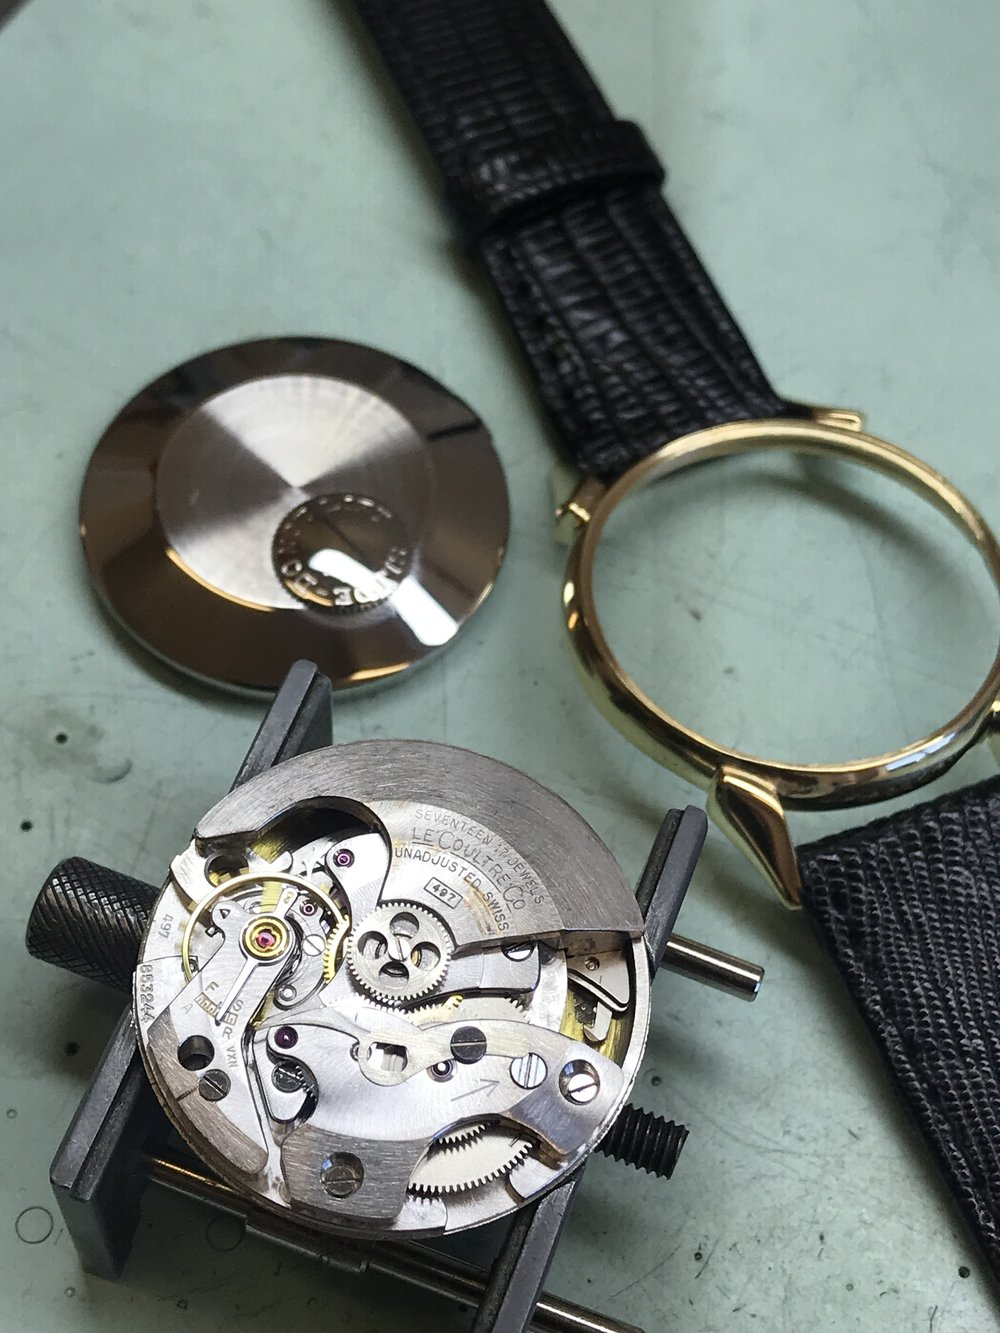 Photo of Le Coultre Co. movement. Bumper automatic winding weight shown.